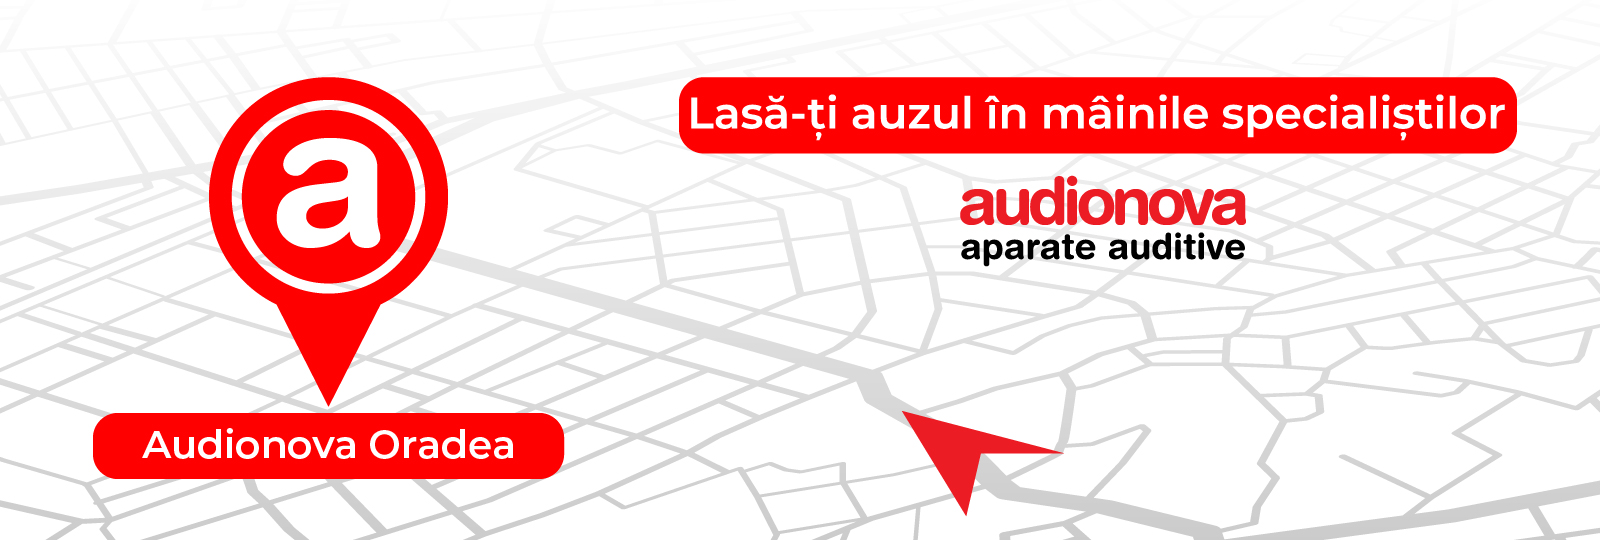 aparate auditive oradea